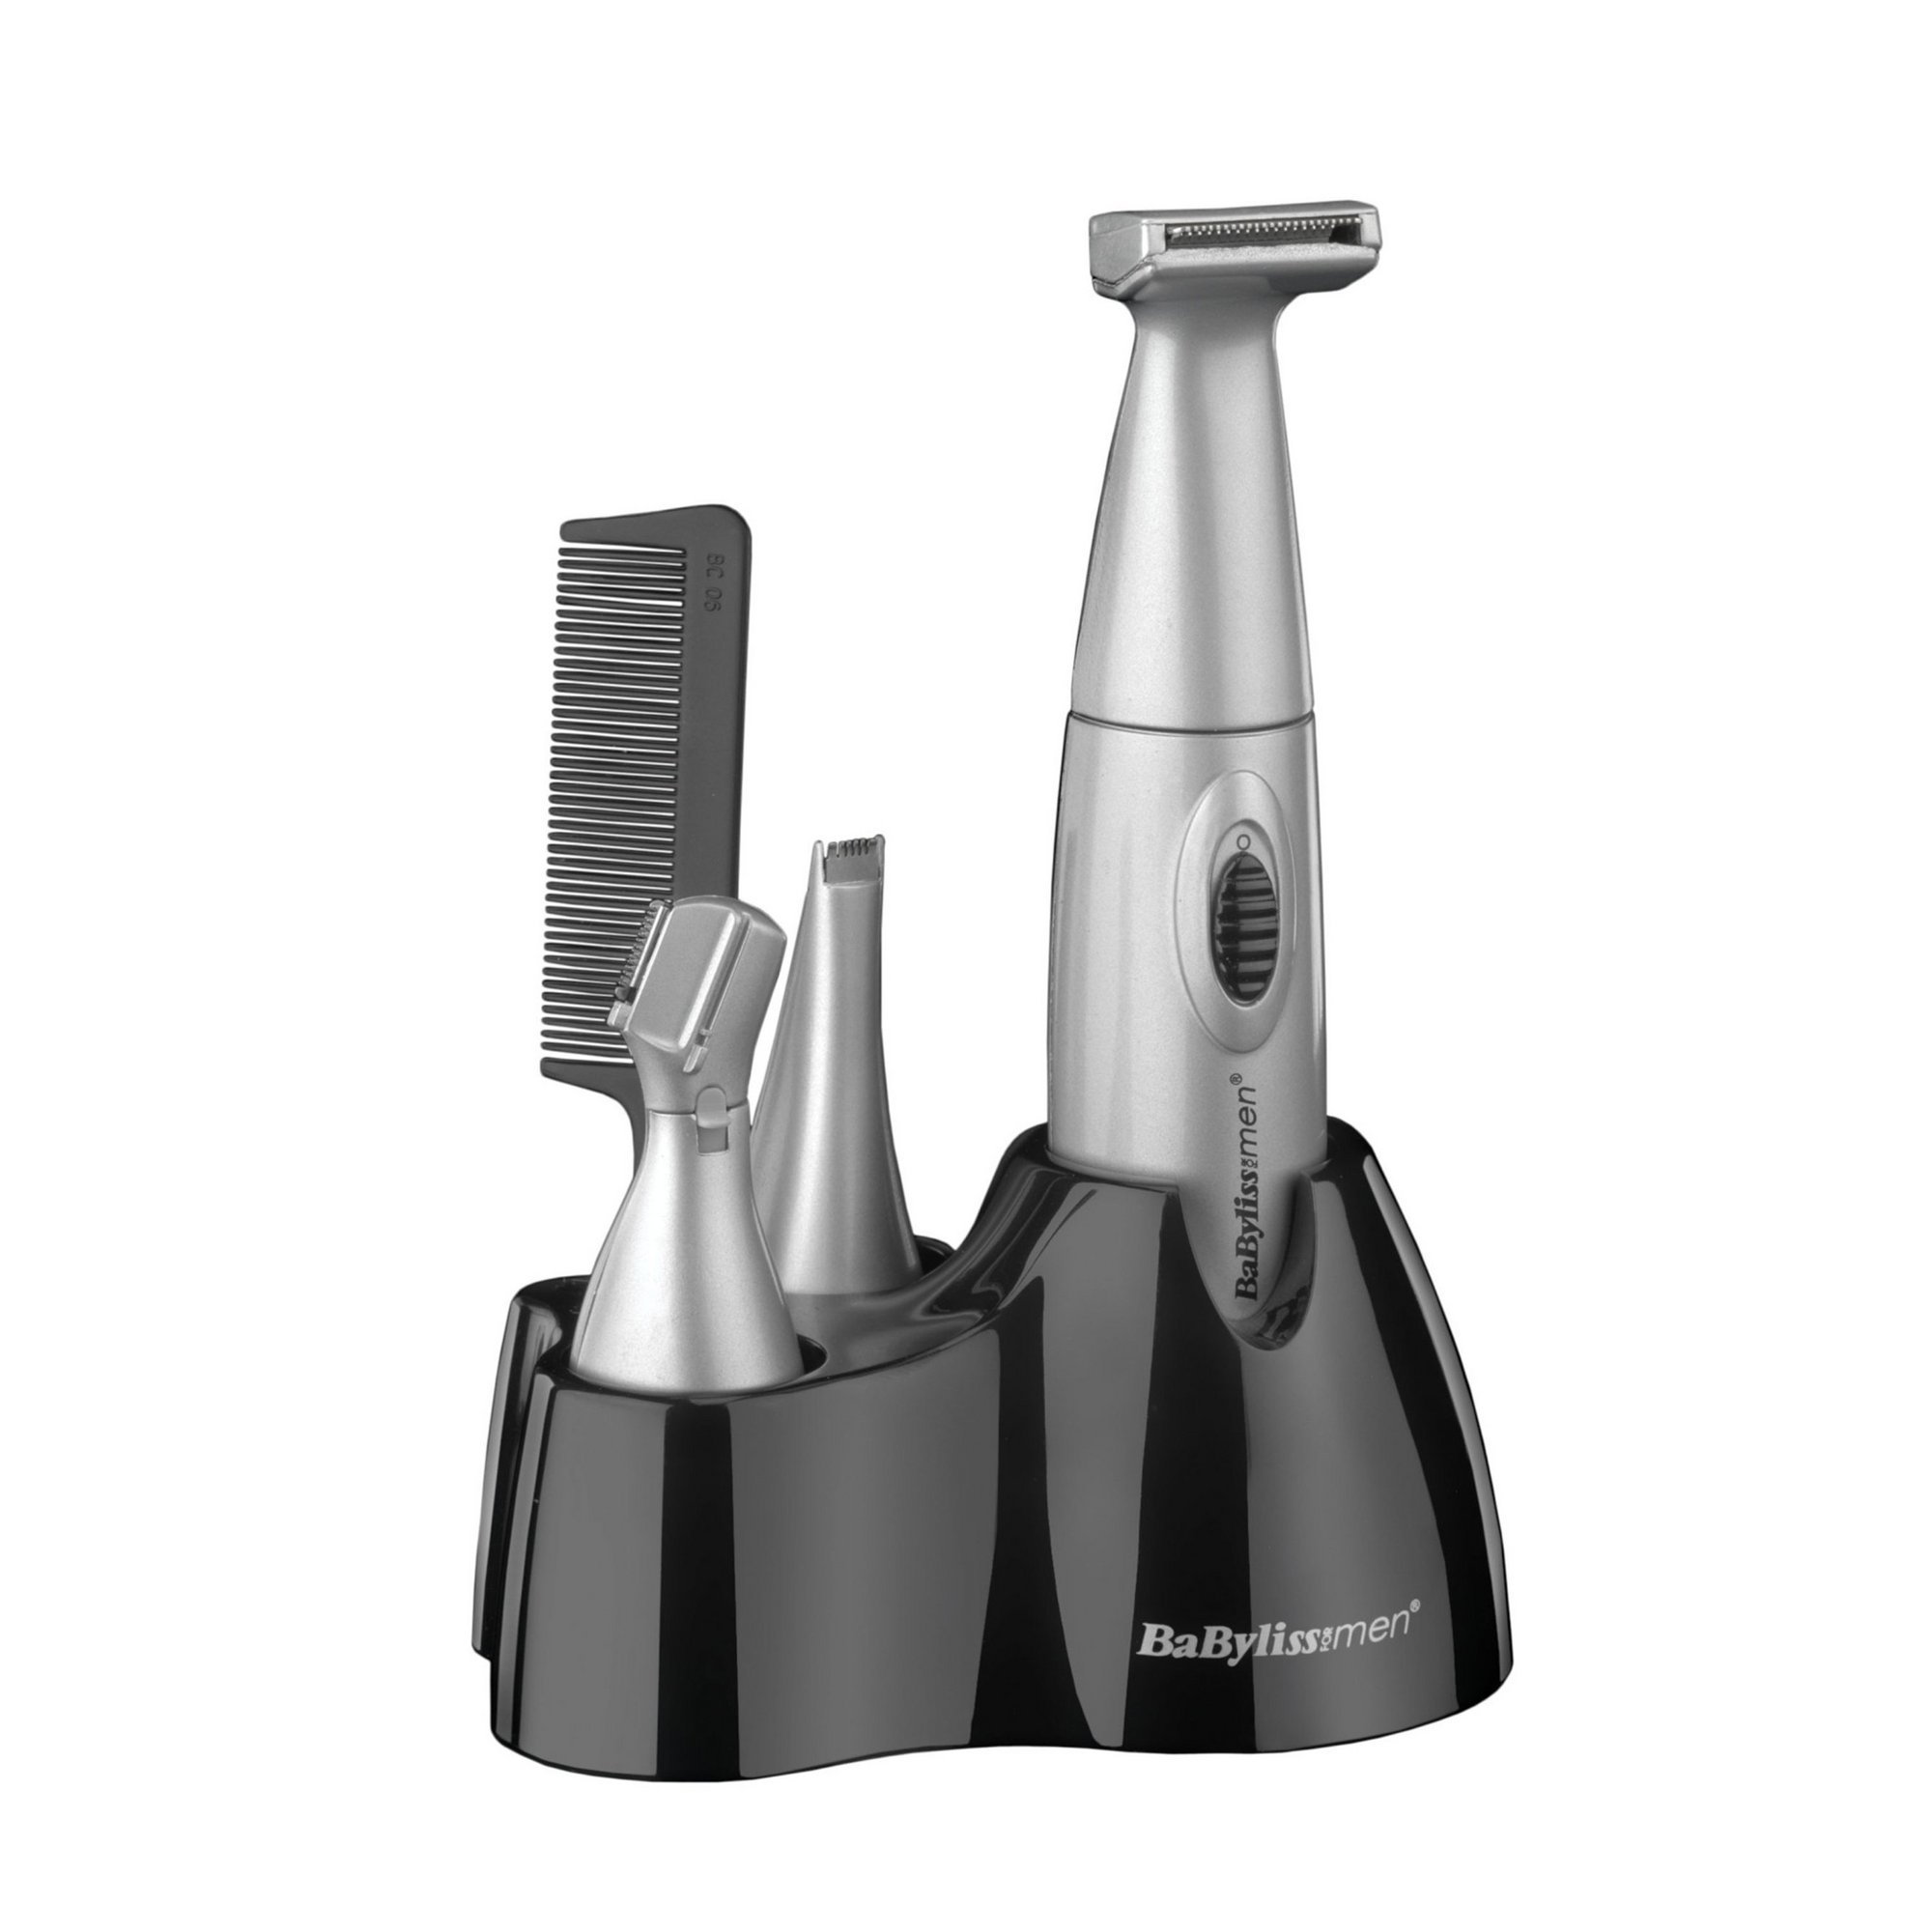 Image of BaByliss for Men 6-in-1 Personal Grooming Set